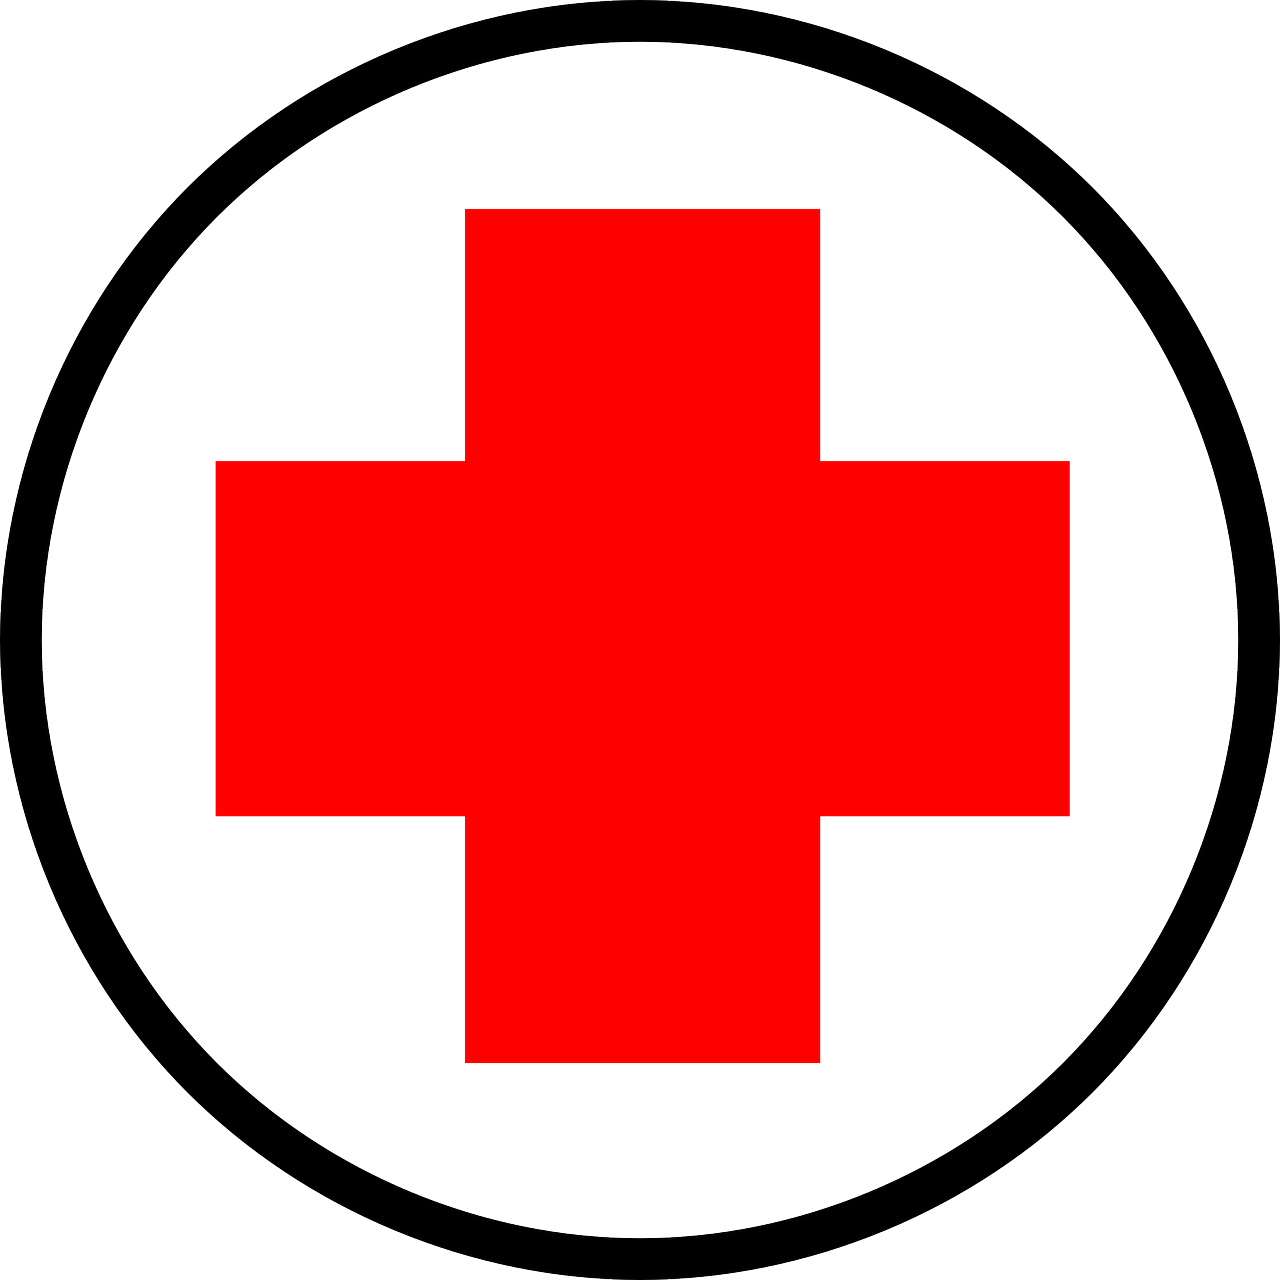 Doctor clipart supply. Red cross has blood